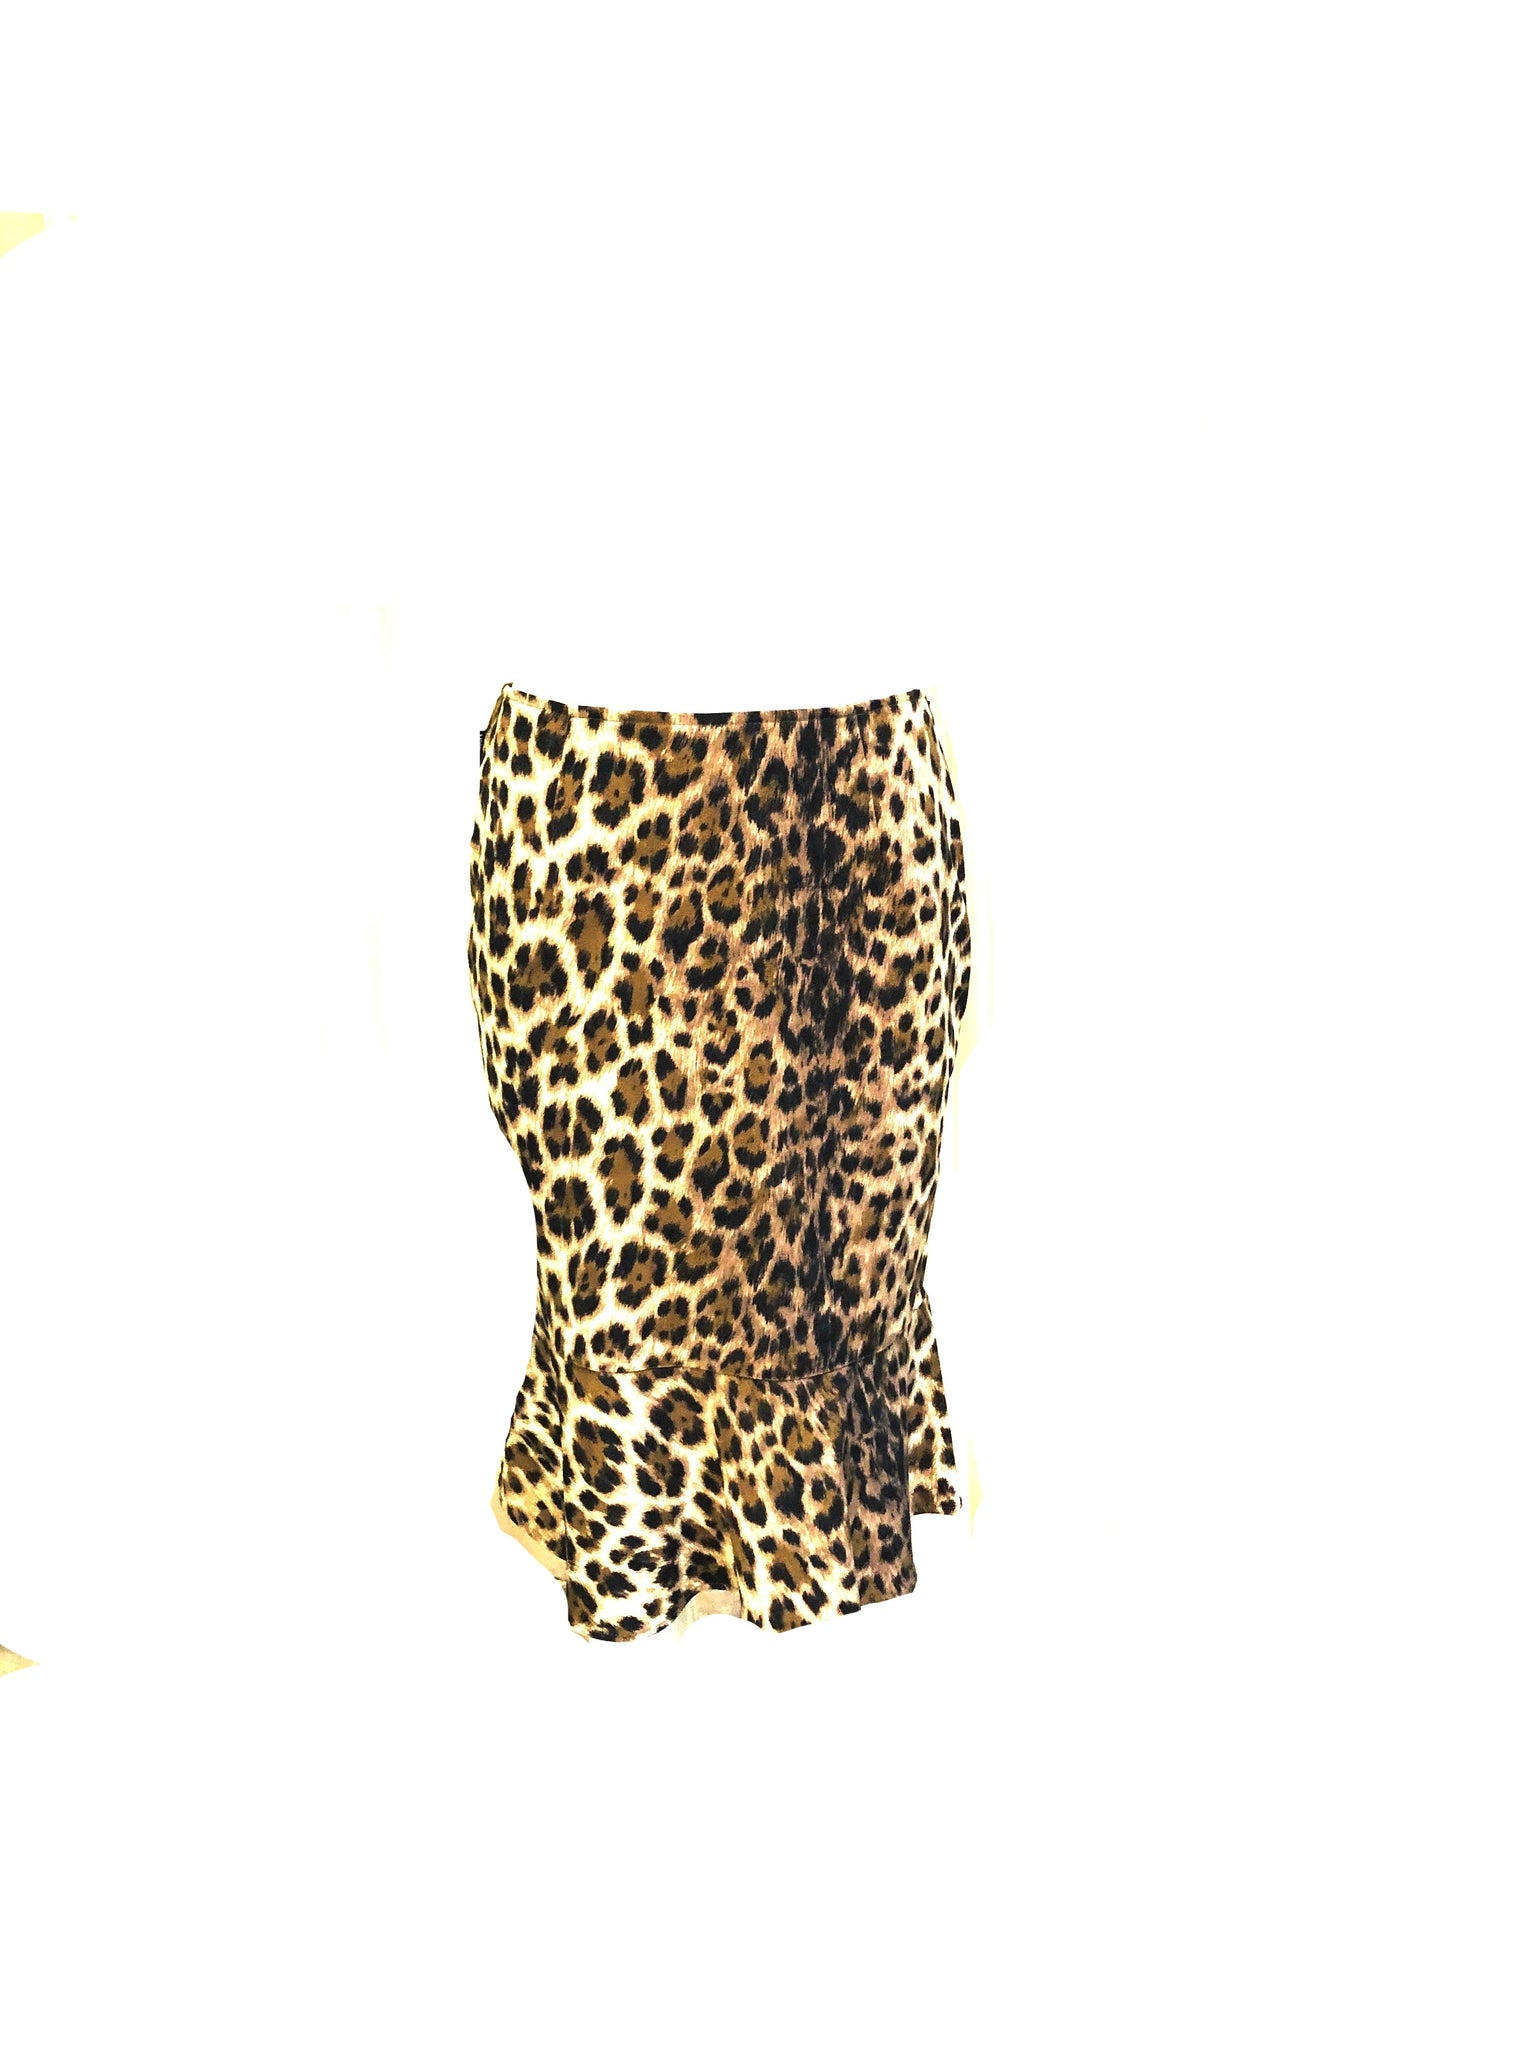 Moschino 90s Leopard Print Stretch Pencil Skirt With Ruffled Hem  BACK 2 of 5